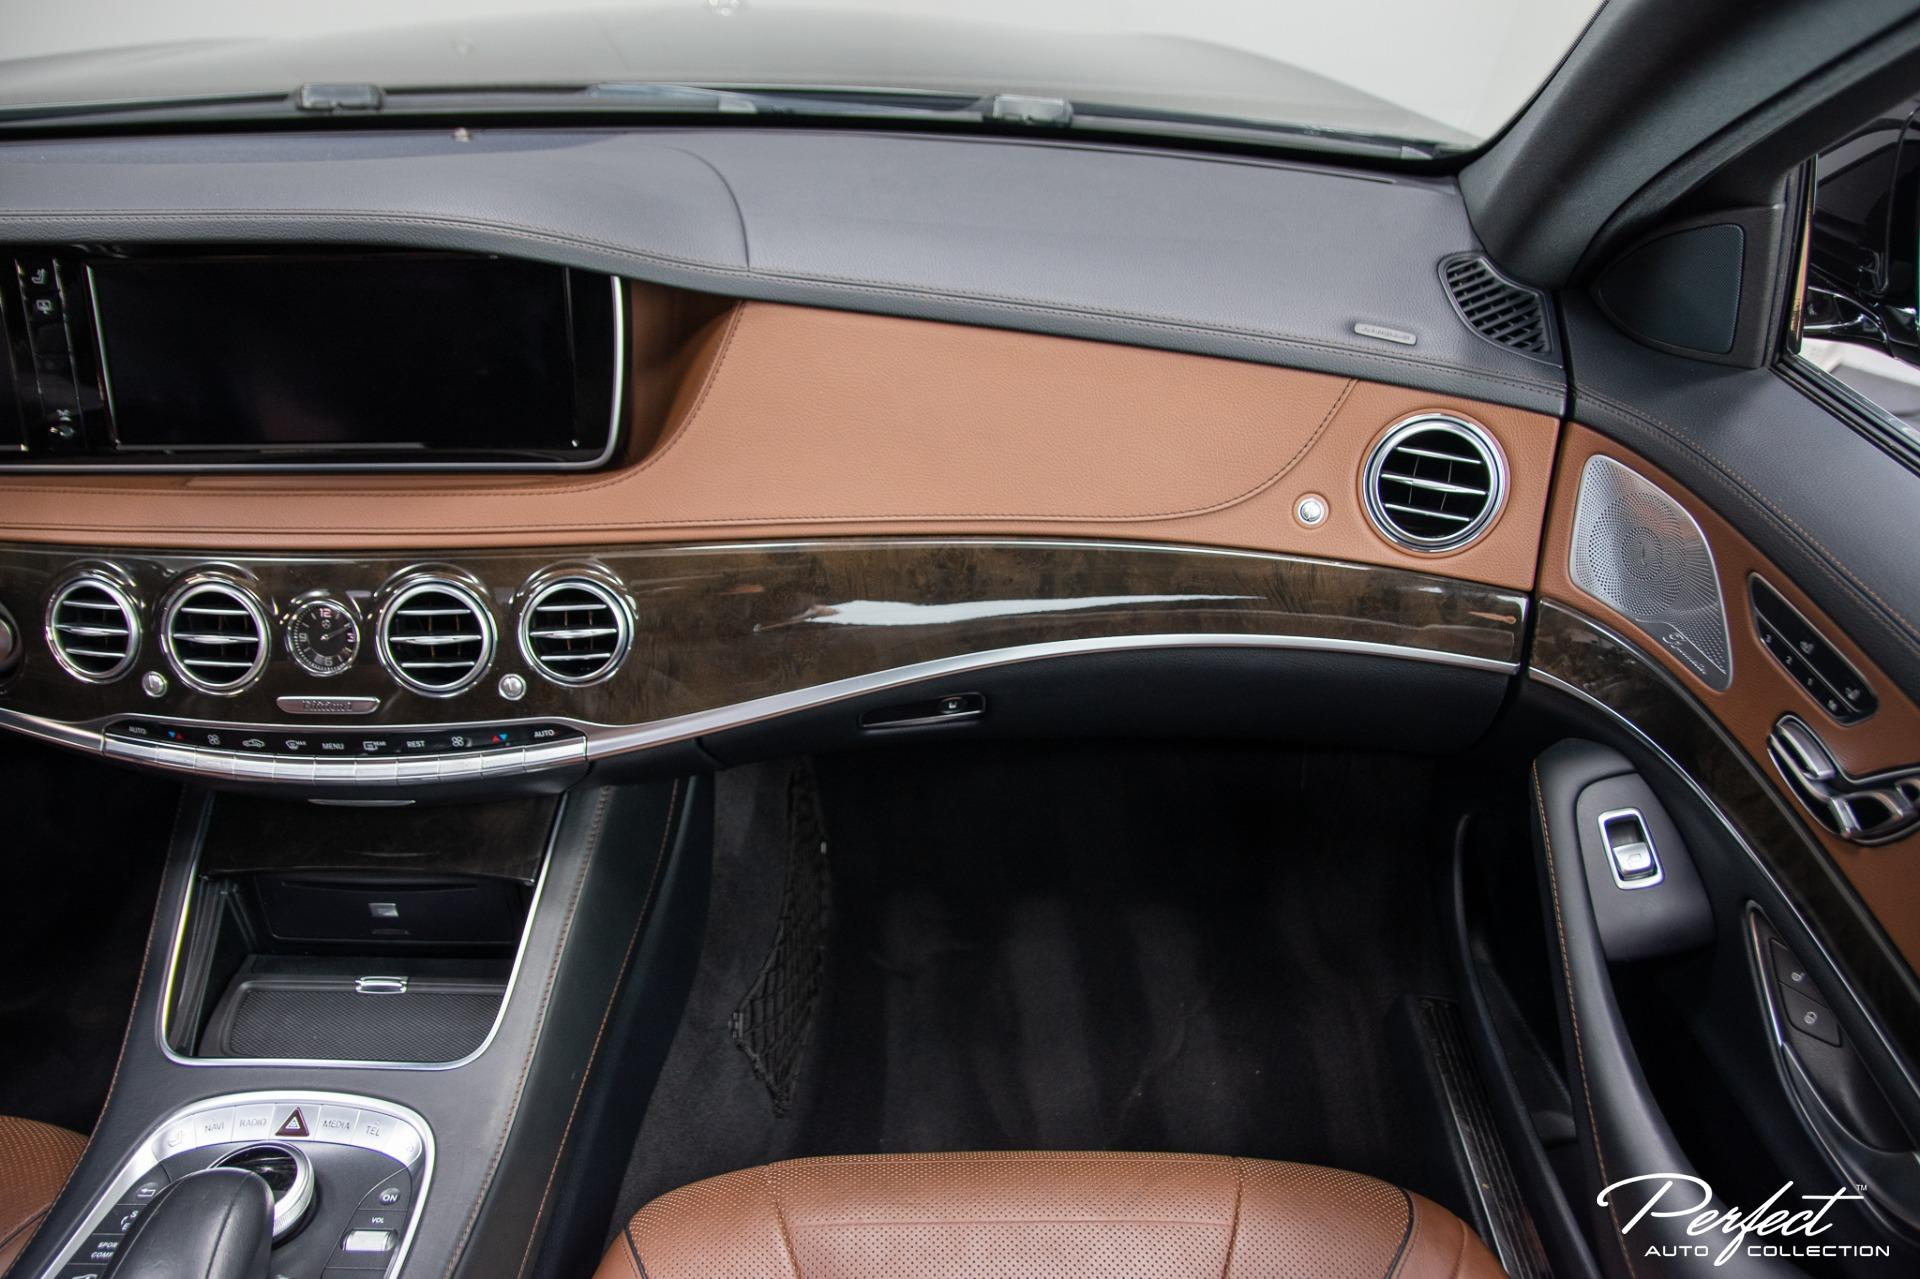 Used 2014 Mercedes Benz S Class S 550 4MATIC Edition One